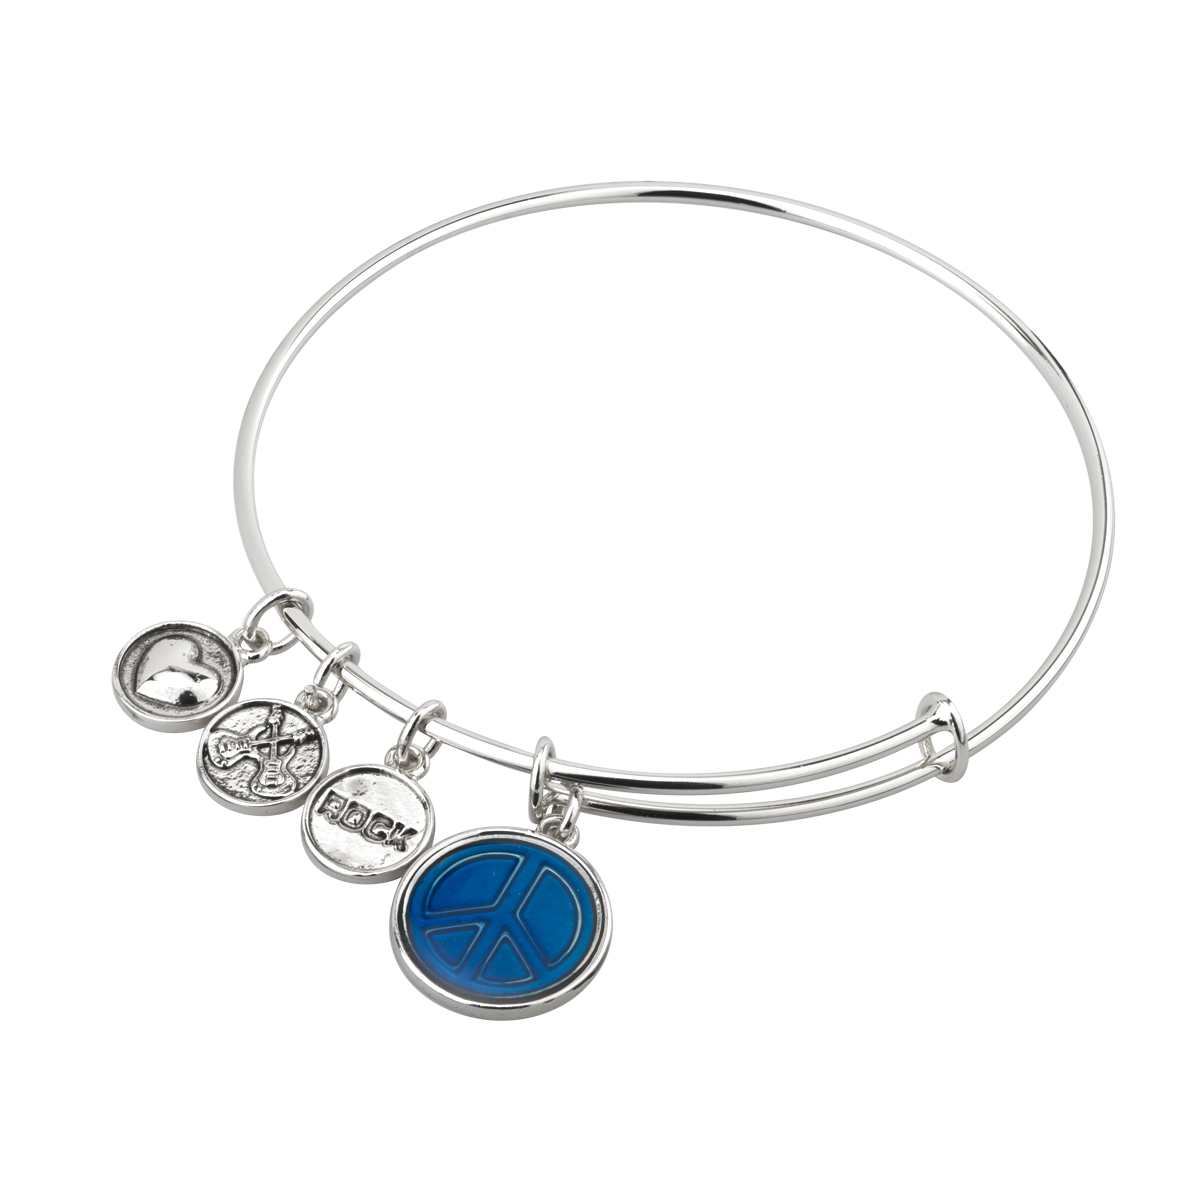 SILVER BANGLE BRACELET WITH BLUE ENAMEL PEACE CHARM